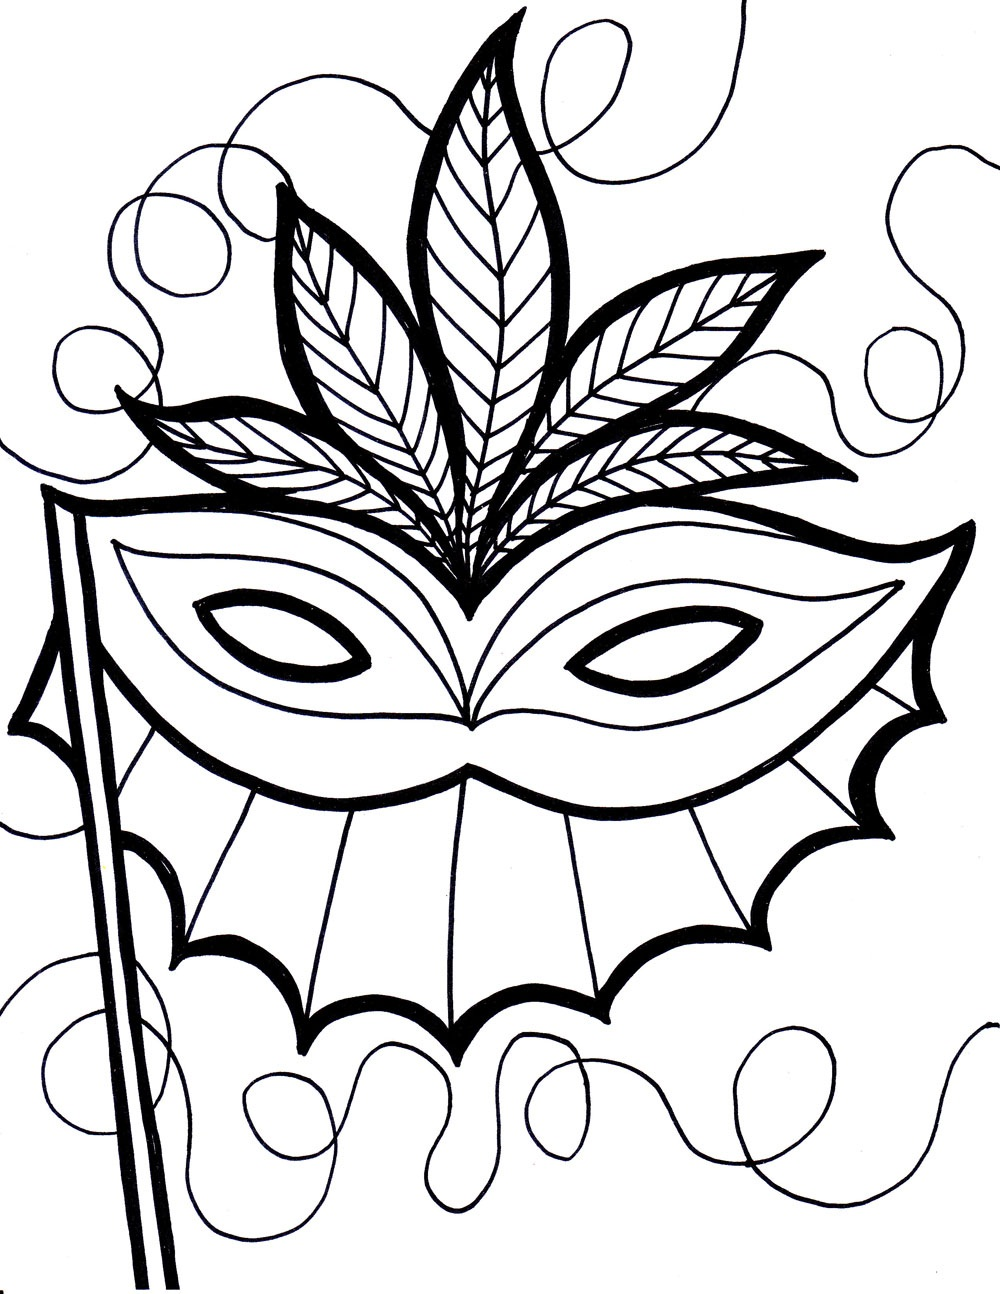 Coloring Pages Mardi Gras Color Pages free printable mardi gras coloring pages for kids page